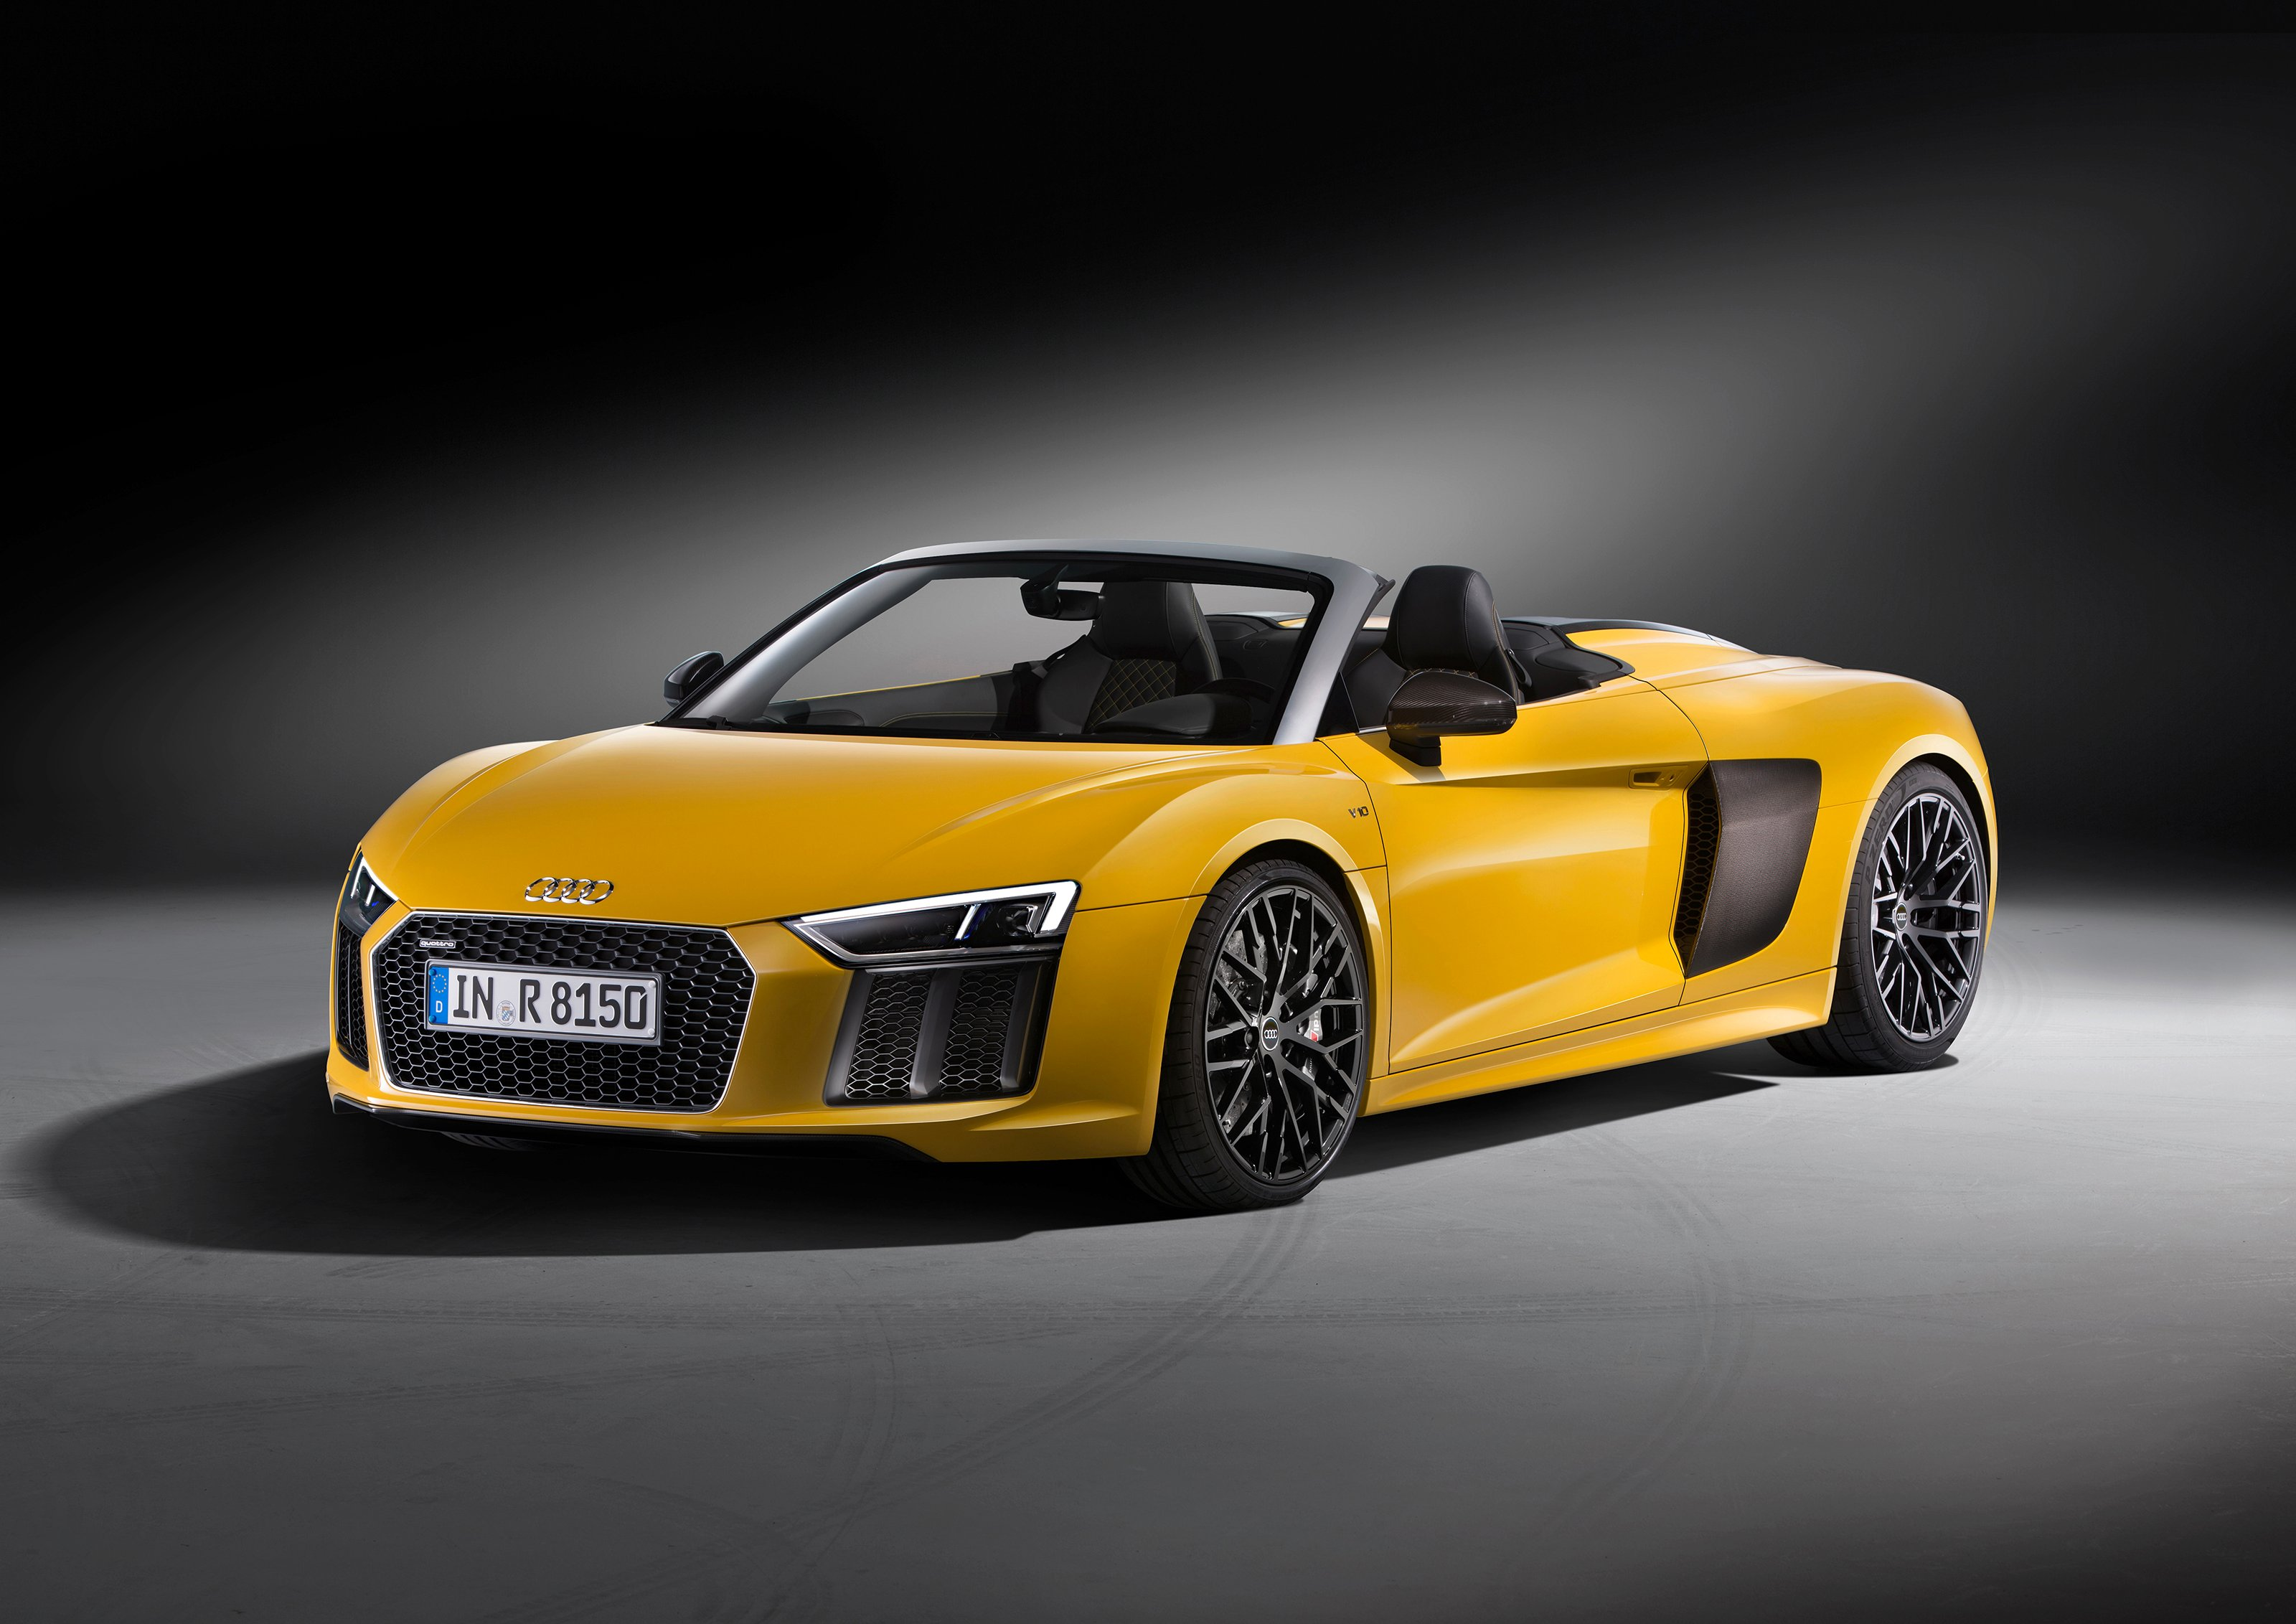 Why The New 2017 Audi R8 Spyder Stuns Without a Roof